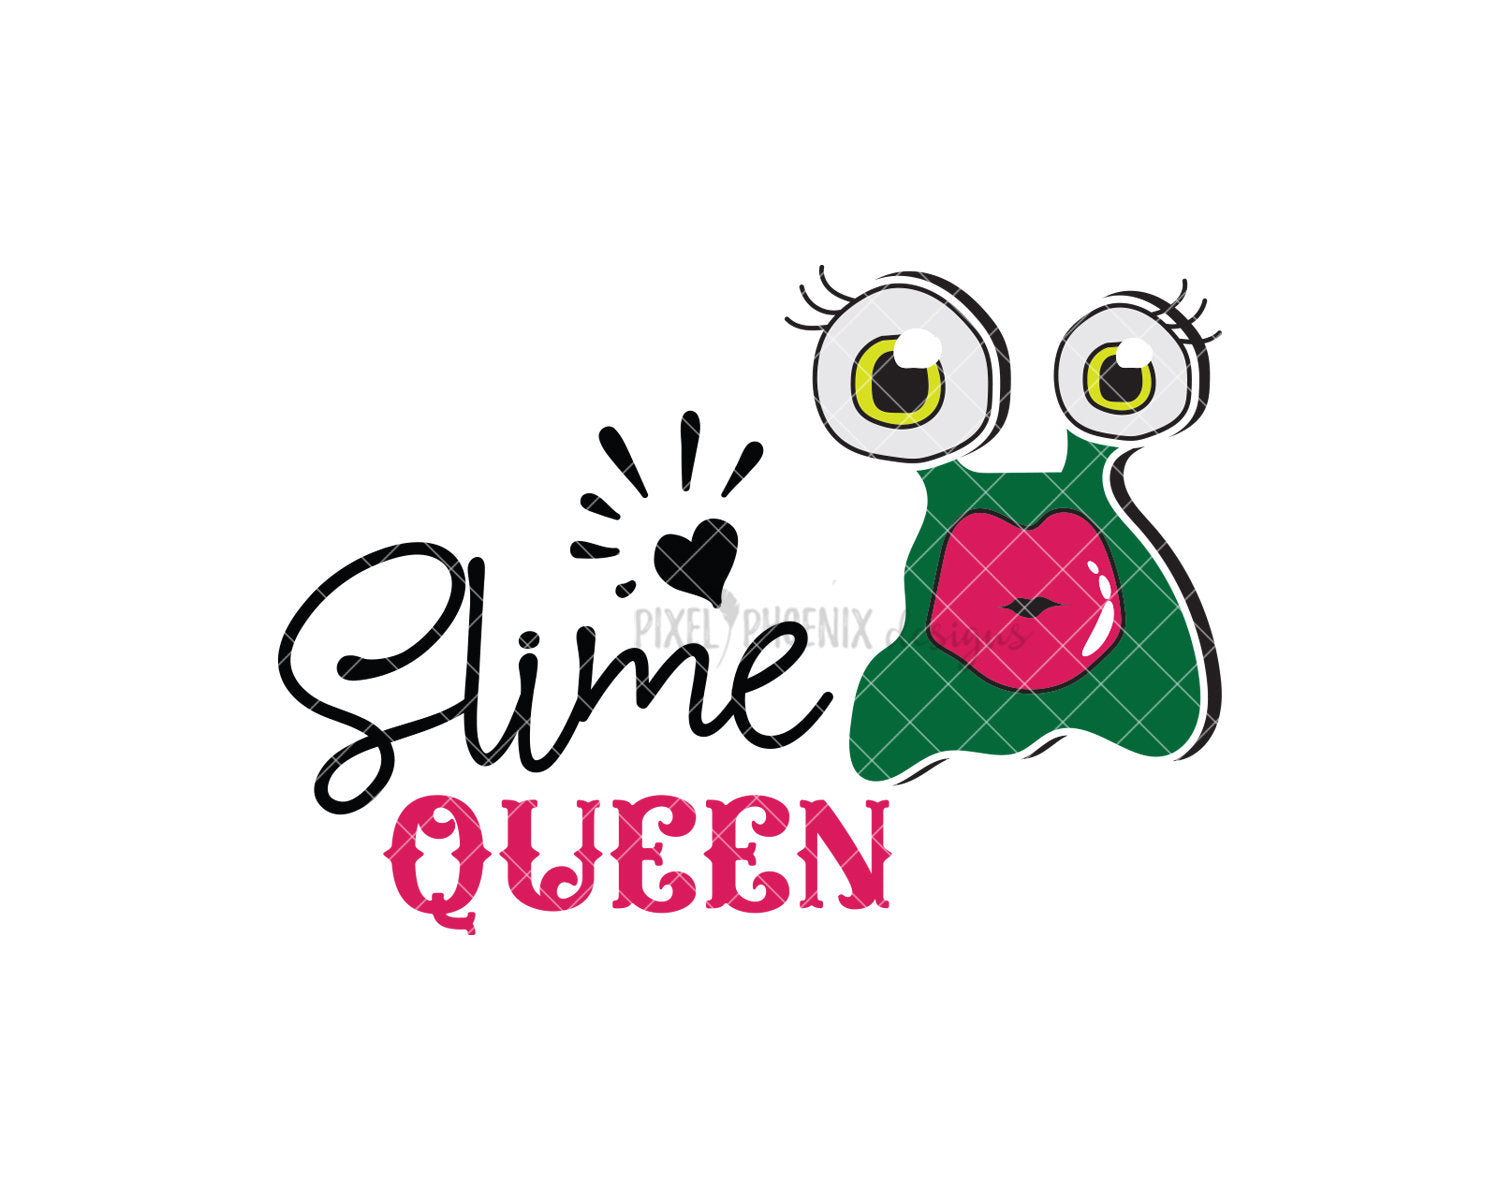 Slime Queen! Slime SVG cut file, perfect for any slime party! For slime lovers of all ages, boys and girls.